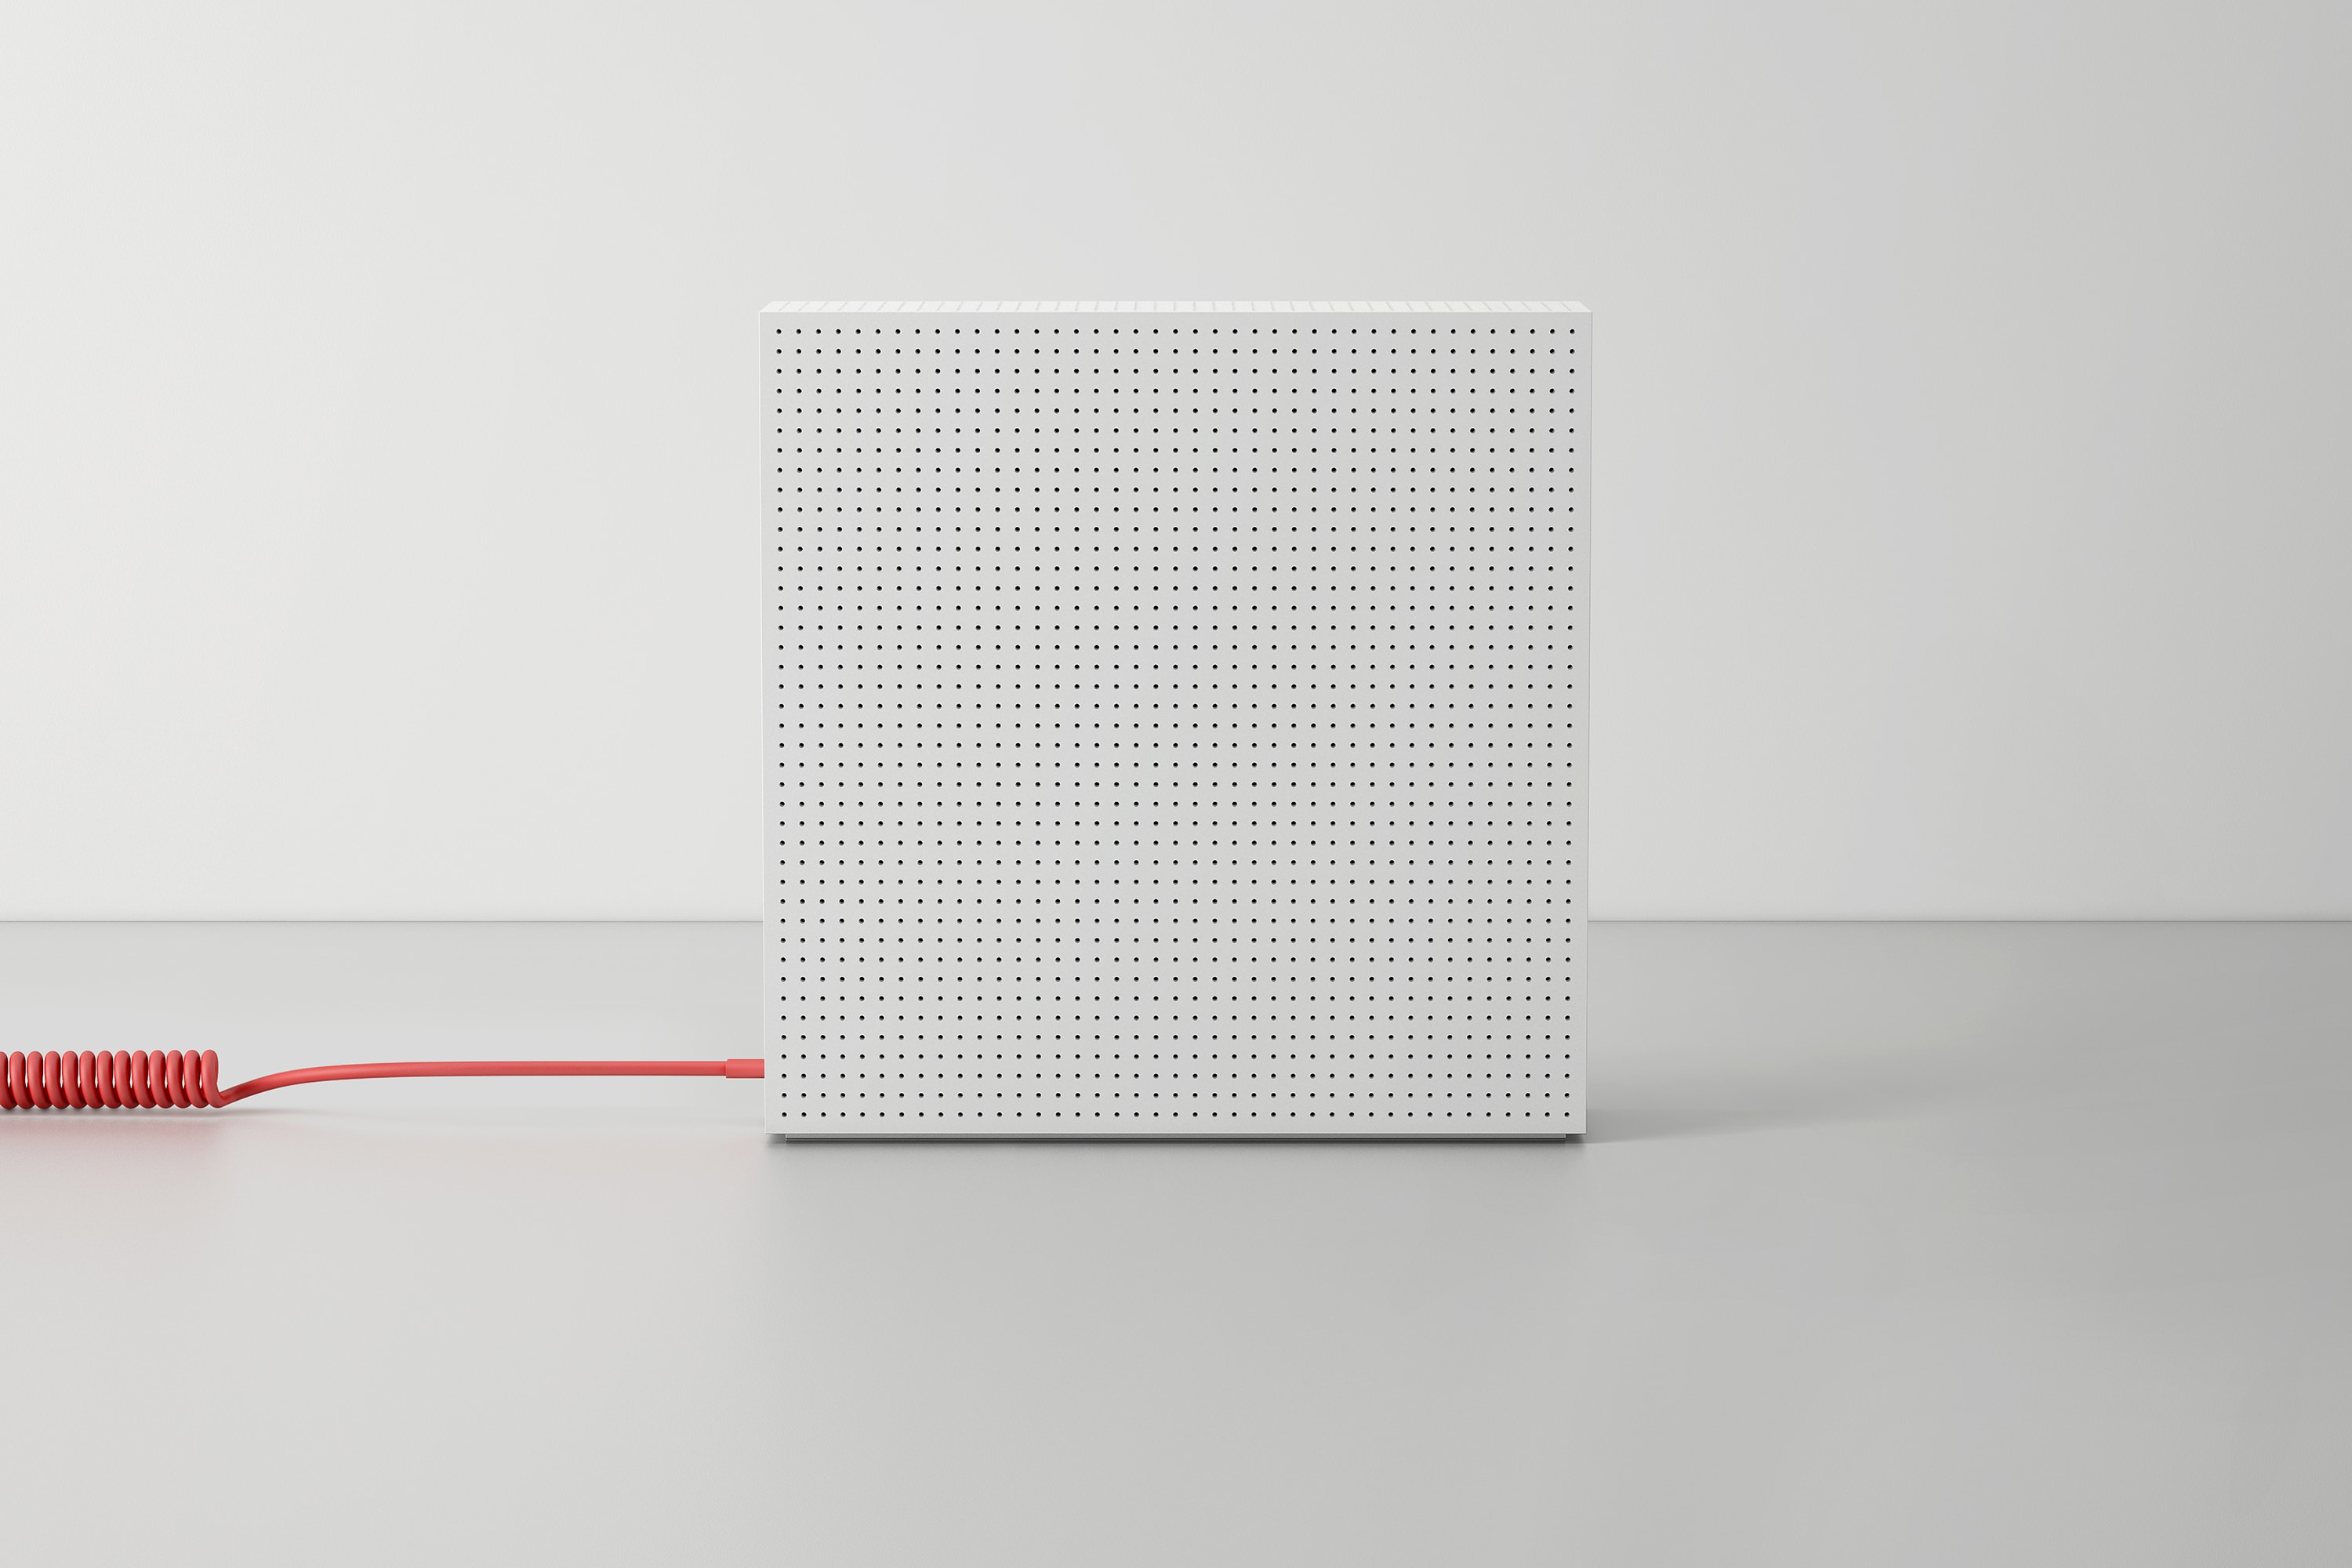 Side view of the DADI Node One in white with a red spiralled power cable plugged in on a grey surface.